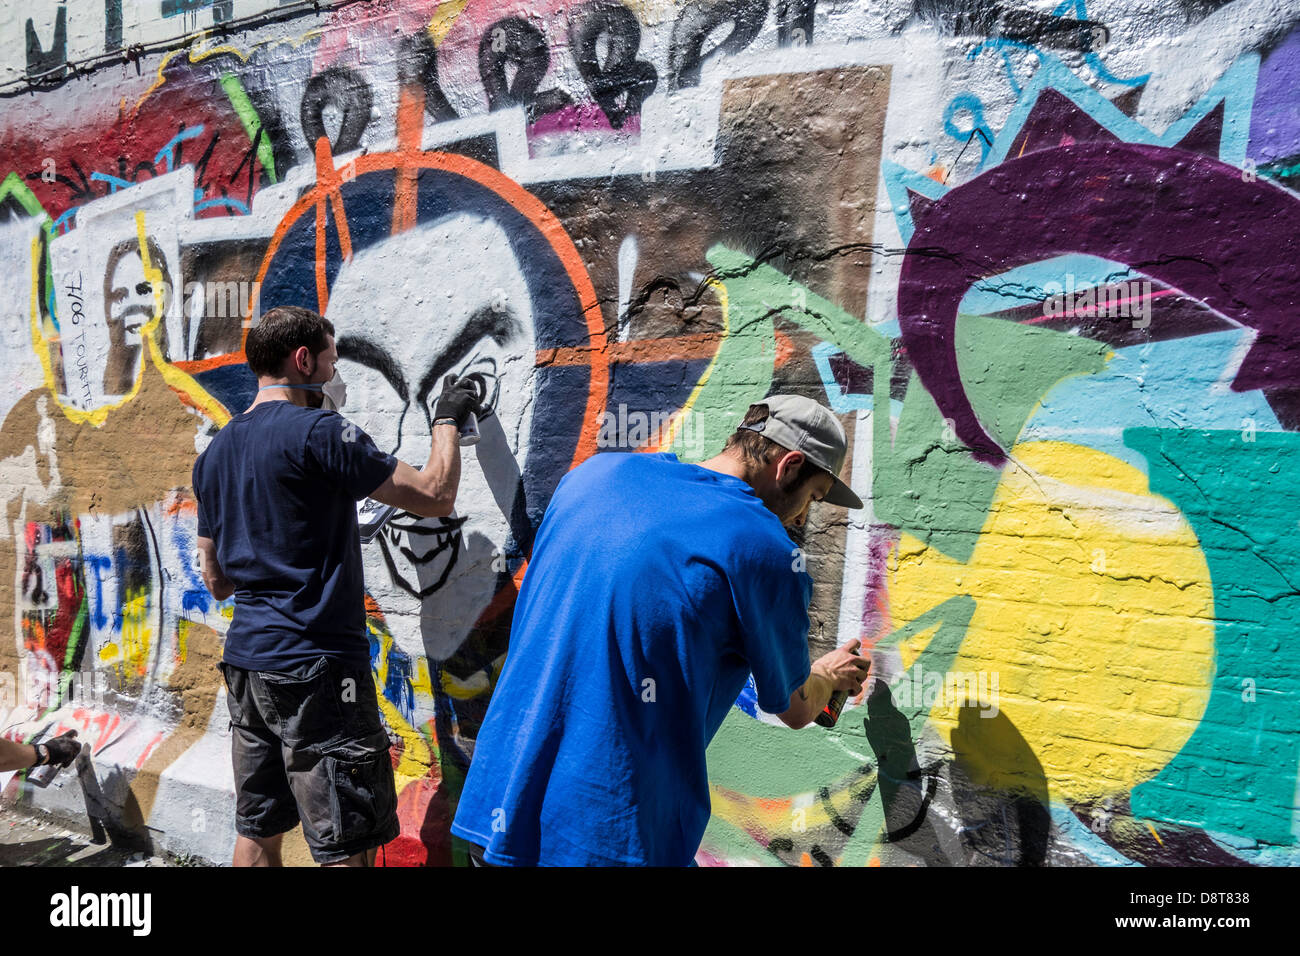 Youngsters with spray cans in alley spraying colourful graffiti on wall of building in town